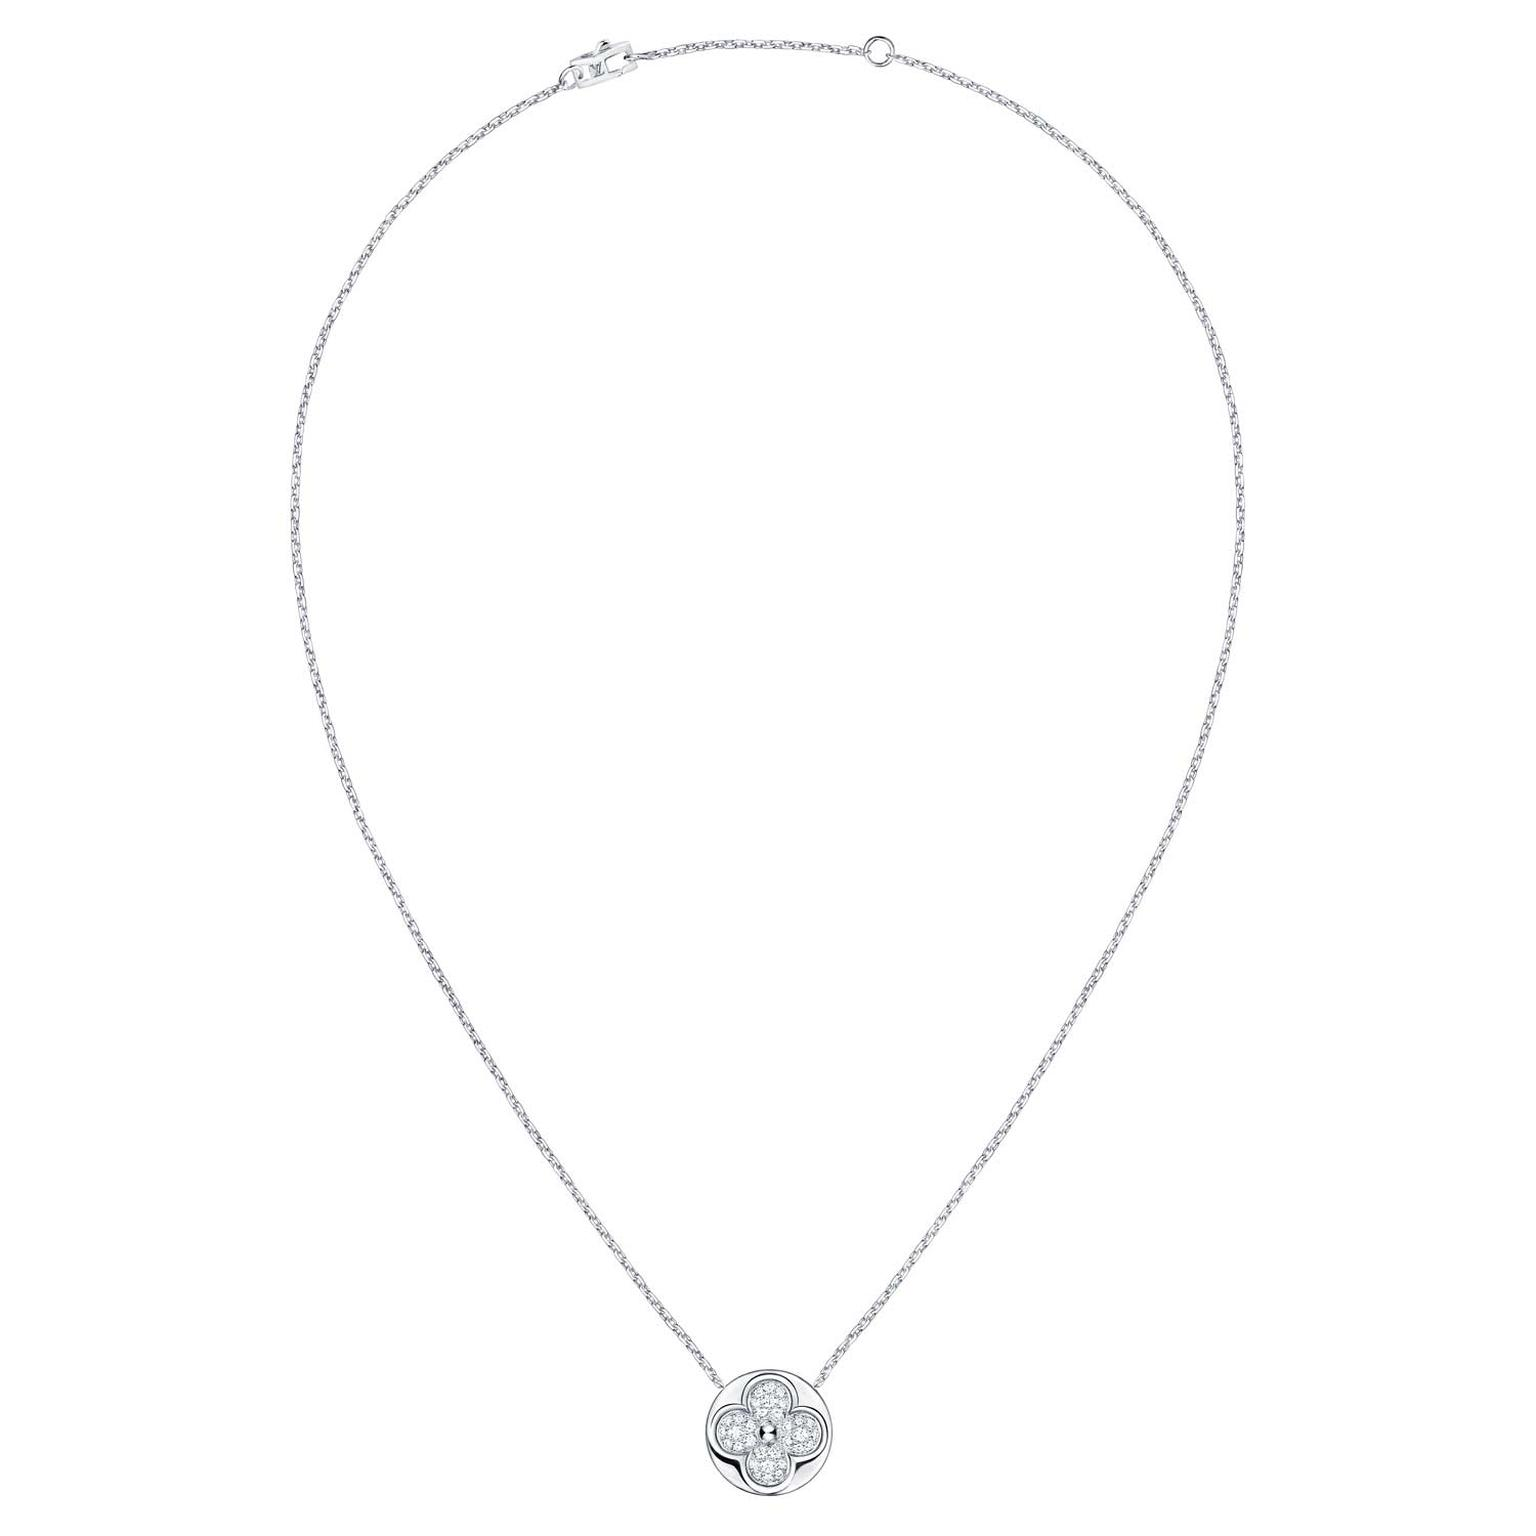 Louis Vuitton Diamond Blossom necklace